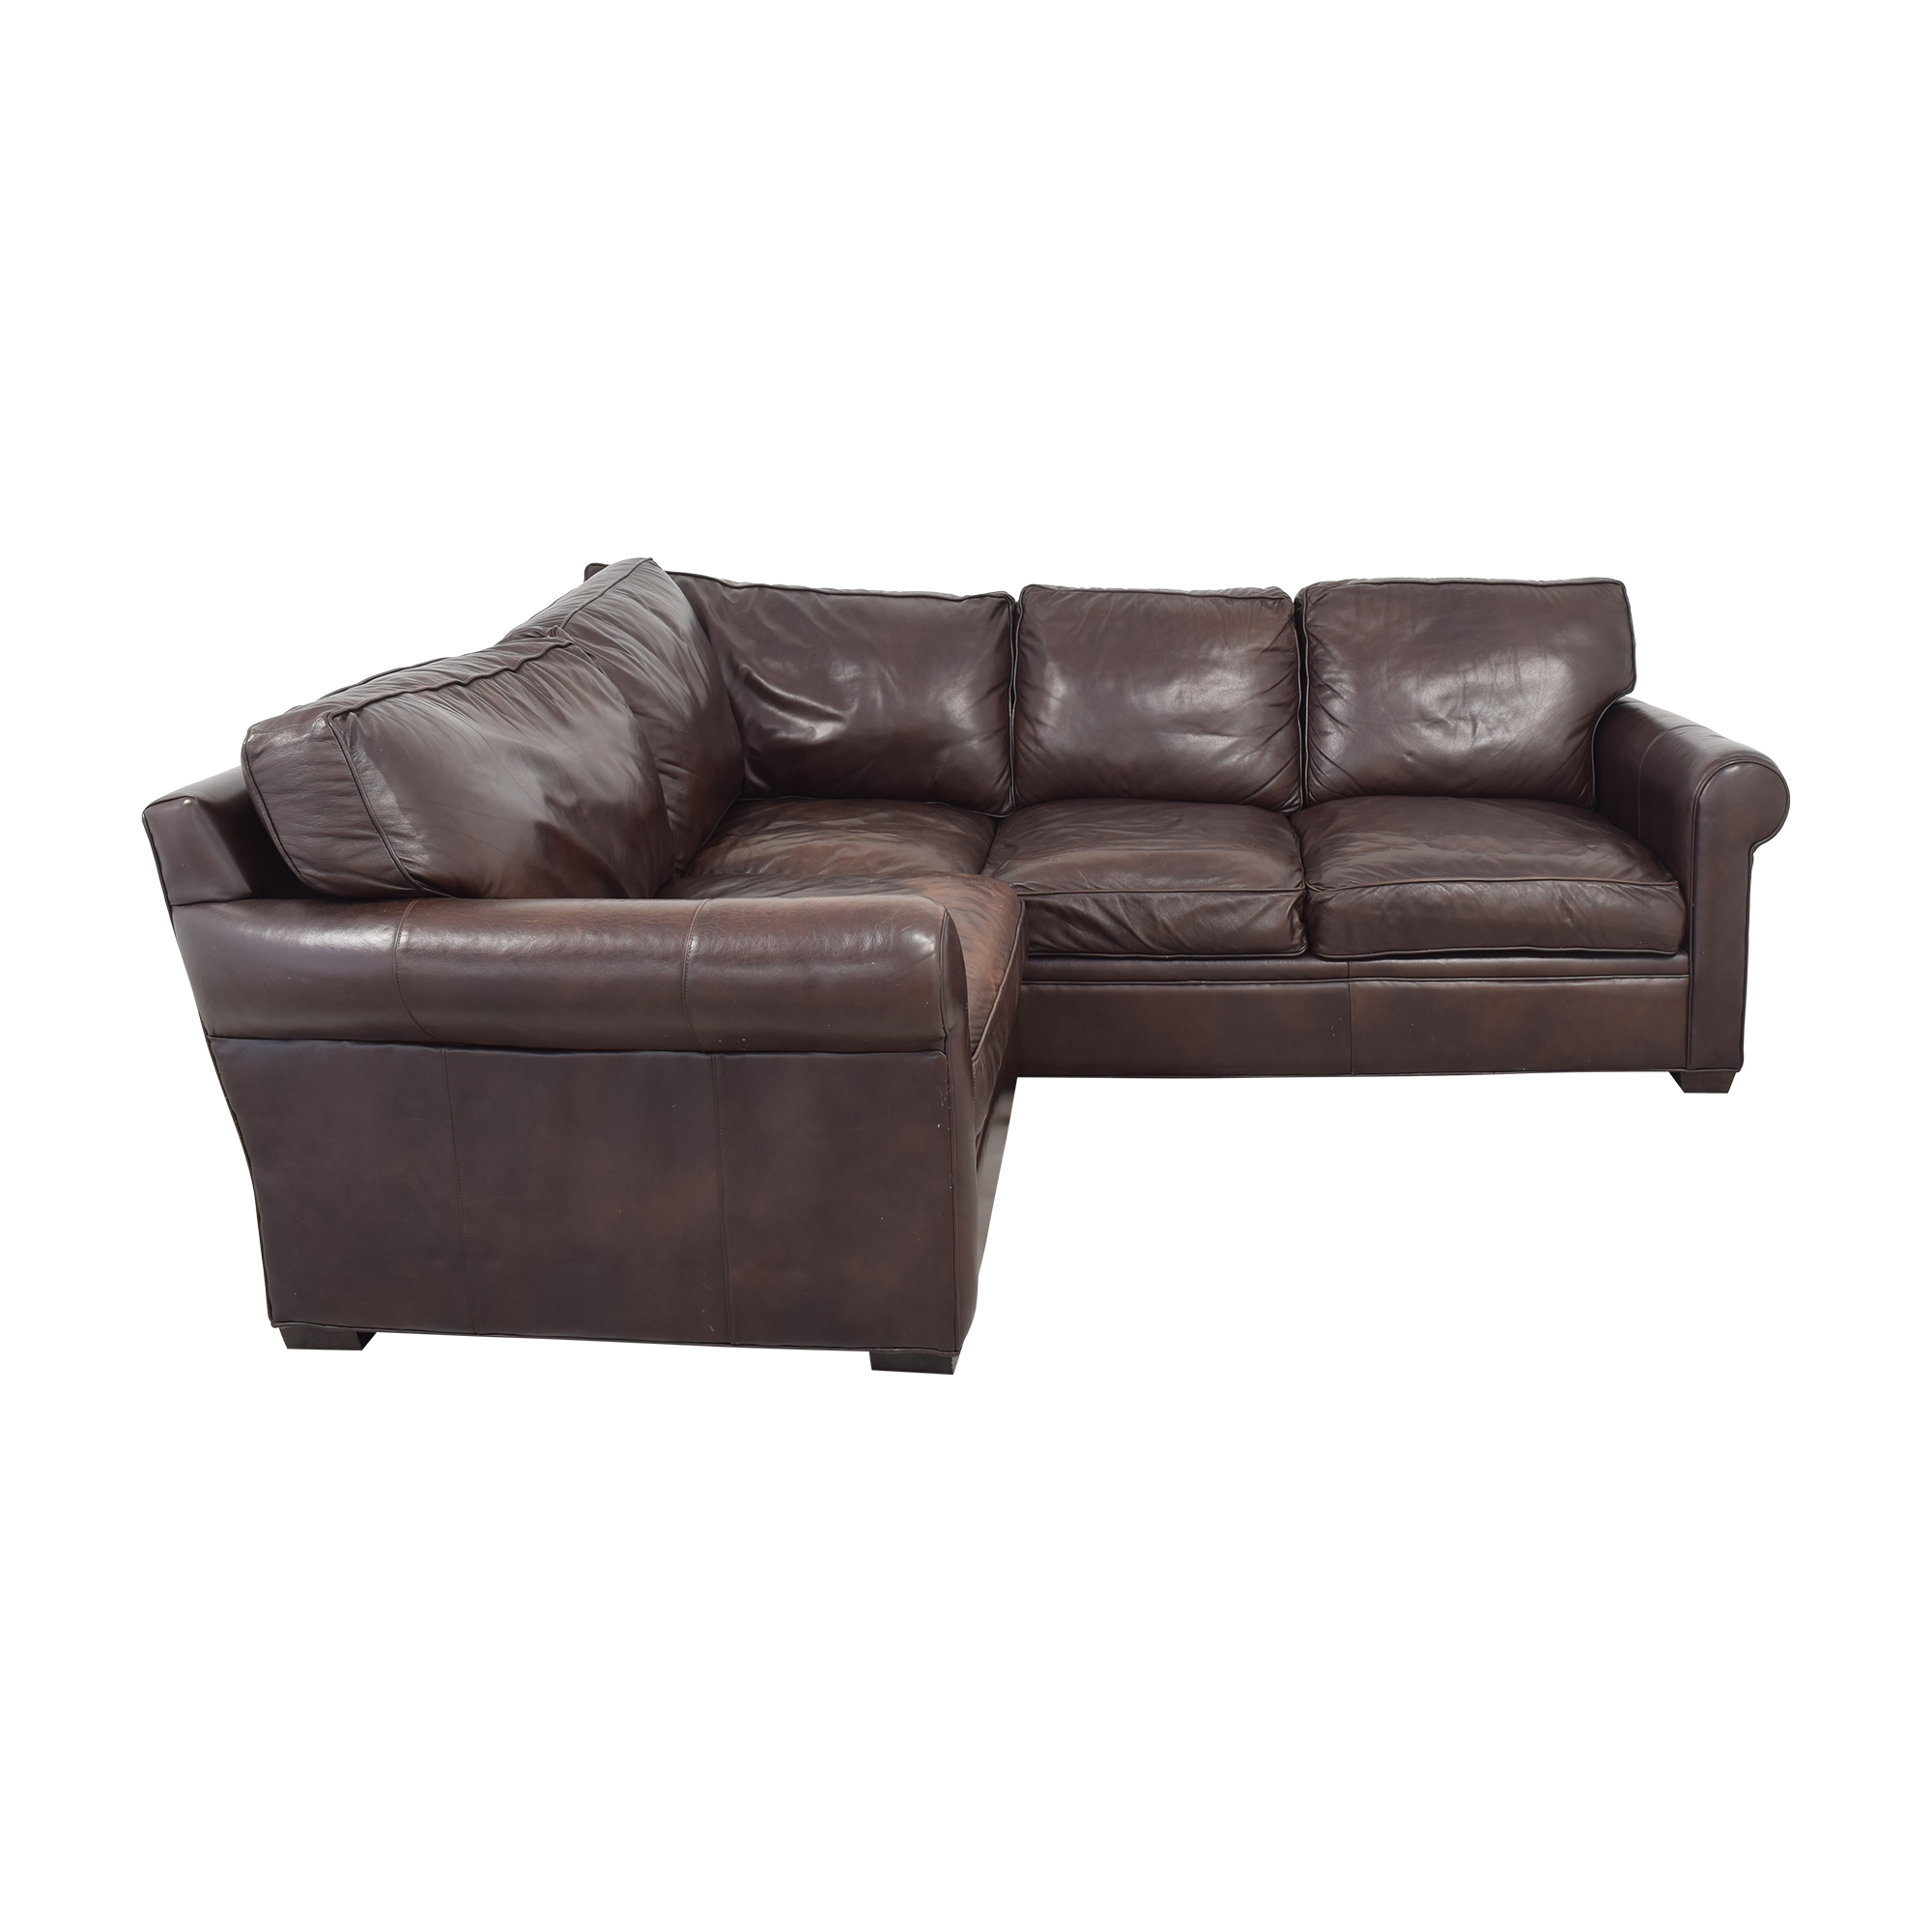 Crate & Barrel Crate & Barrel L-Shaped Sectional Sofa Sectionals